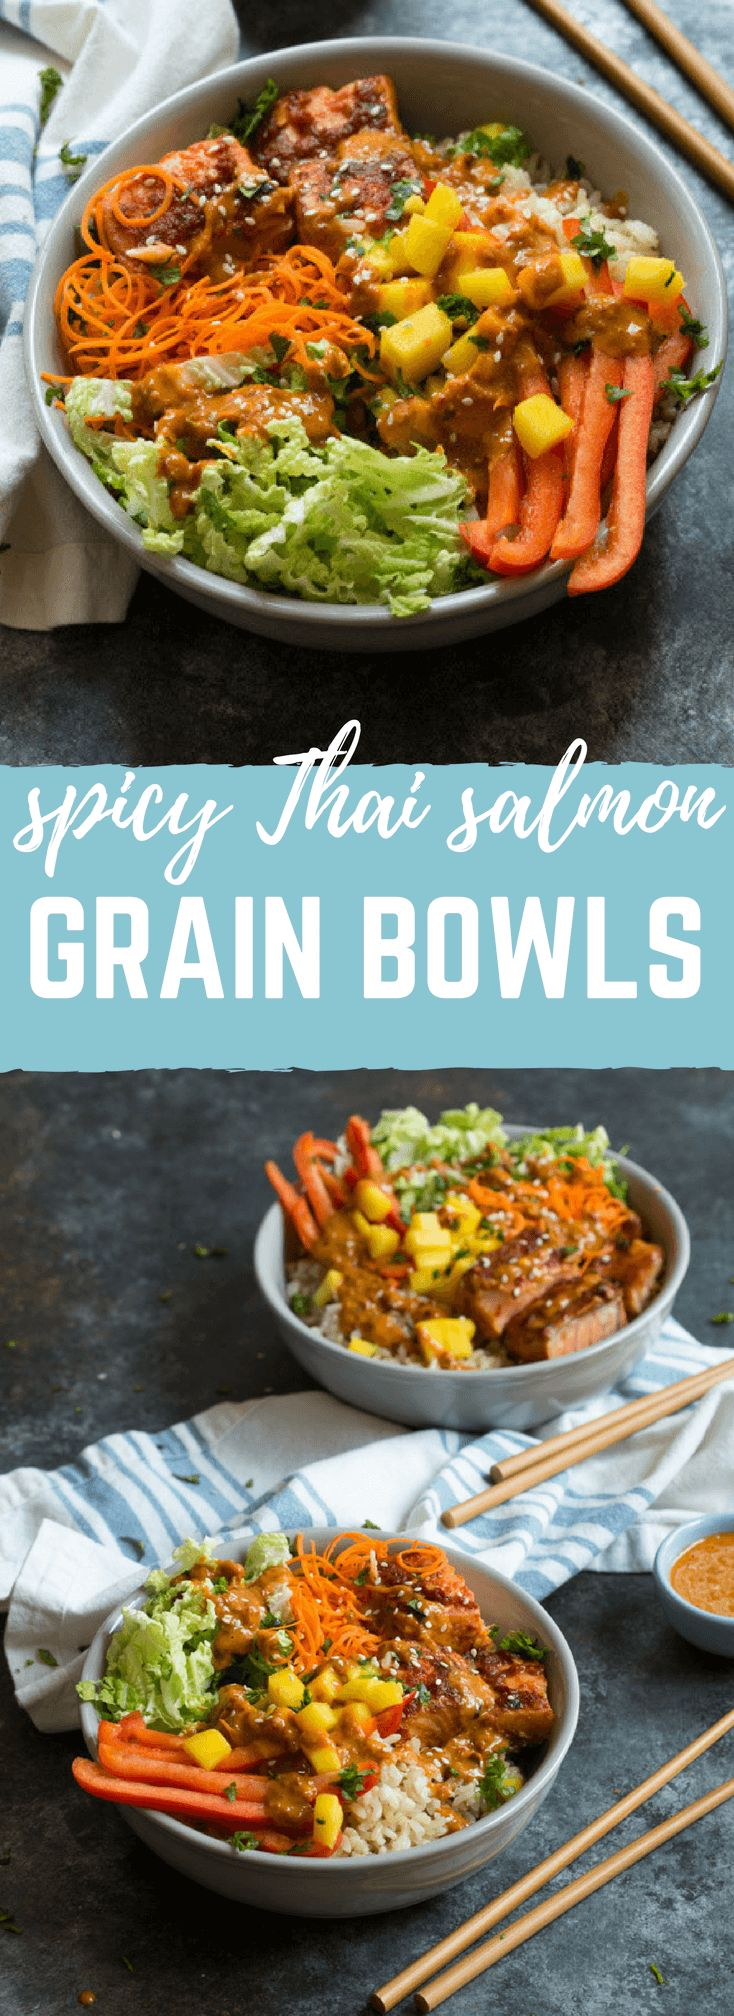 Spicy Thai Salmon Grain Bowls loaded with veggies, brown basmati rice and warm baked salmon and a drizzle of spicy Thai sauce. #ad